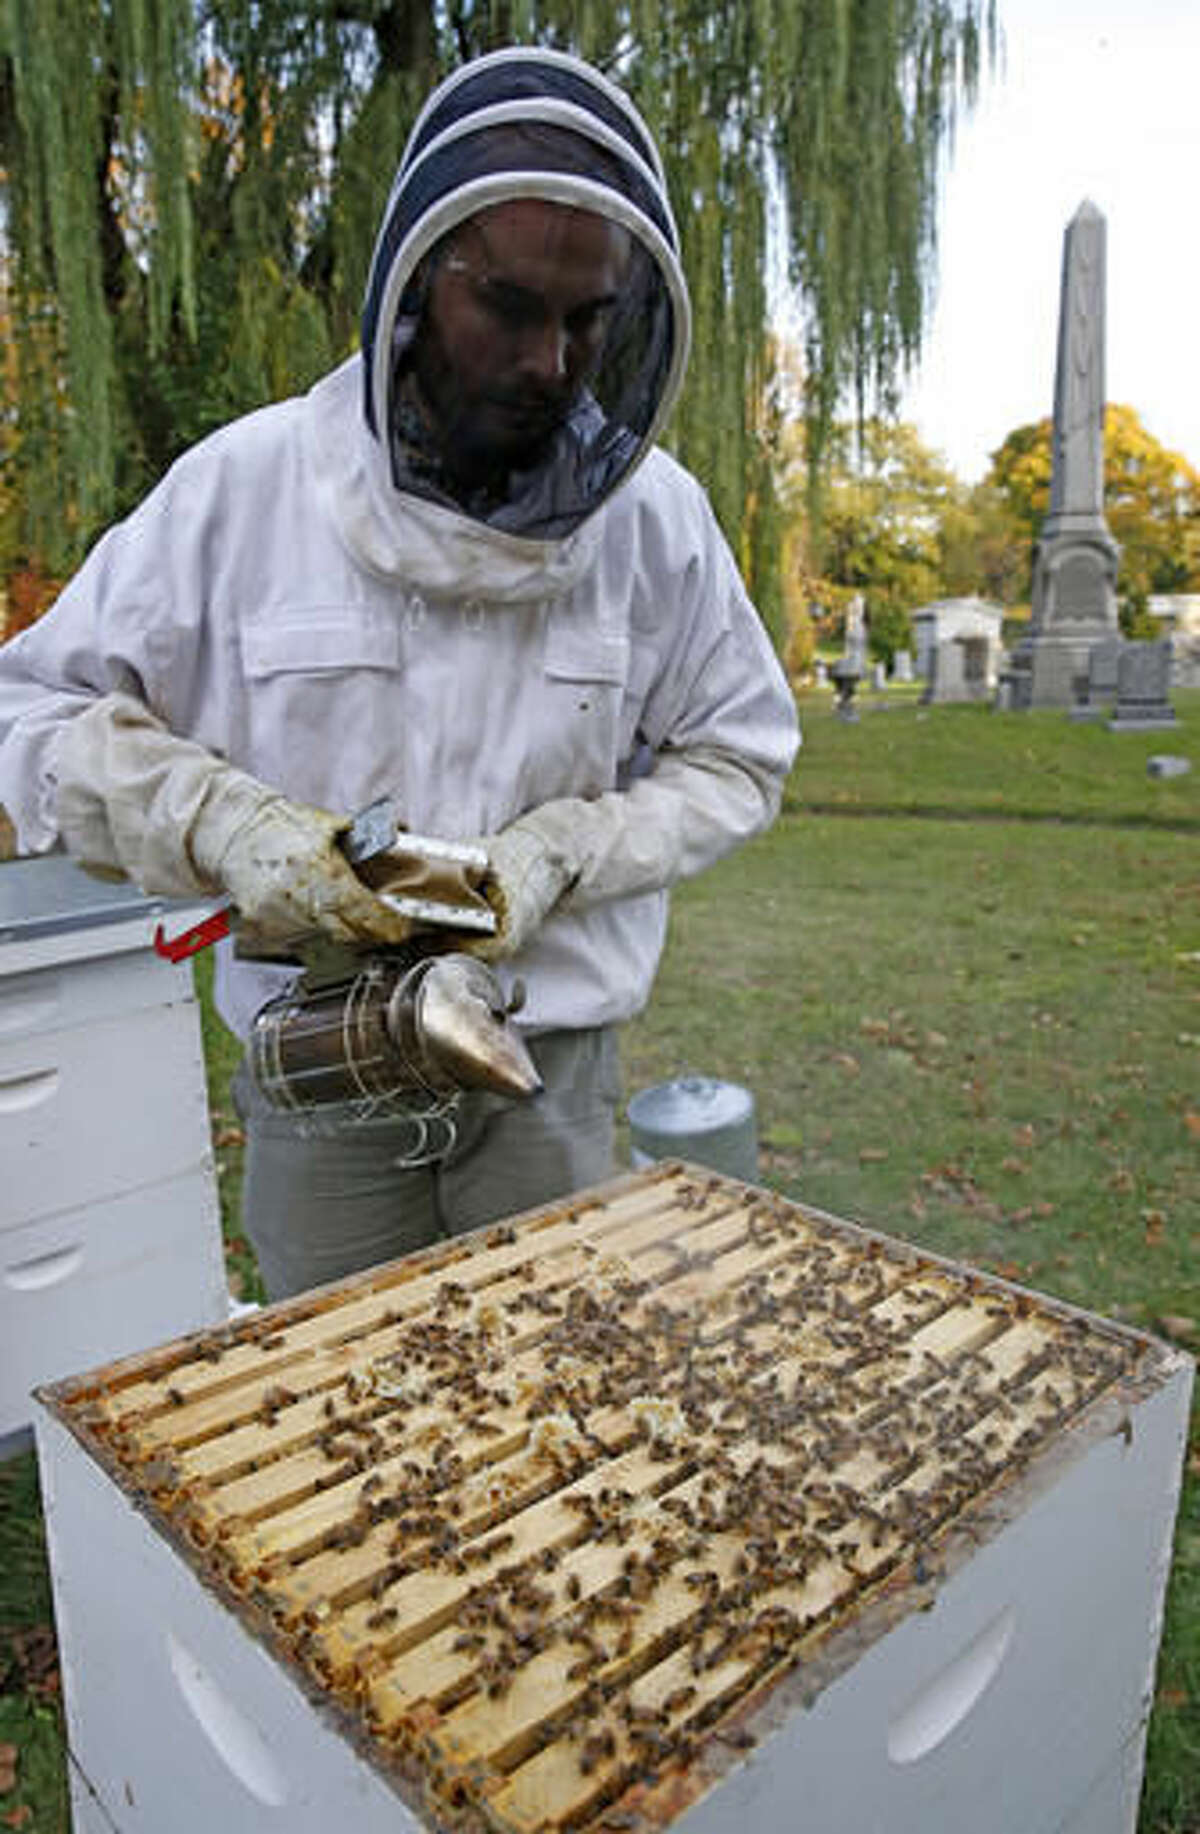 """In this Nov. 2, 2016 photo, beekeeper Davin Larson, 30, gently uses a smoker to calm honeybees after opening a hive to inspect it for mites, general health and good levels, at Brooklyn's Green-Wood cemetery, a national historic landmark, in New York. Larson, who has worked around bees for 24 years, maintains six hives, each containing approximately 40,000 bees at the 485-acre cemetery. While attending a classical music concert at the Green-Wood's central chapel, Larson realized the cemetery, with it's plentiful flowering plants and trees, ponds, and 24-hour security """"had to be a perfect place to keep bees in the city."""" (AP Photo/Kathy Willens)"""